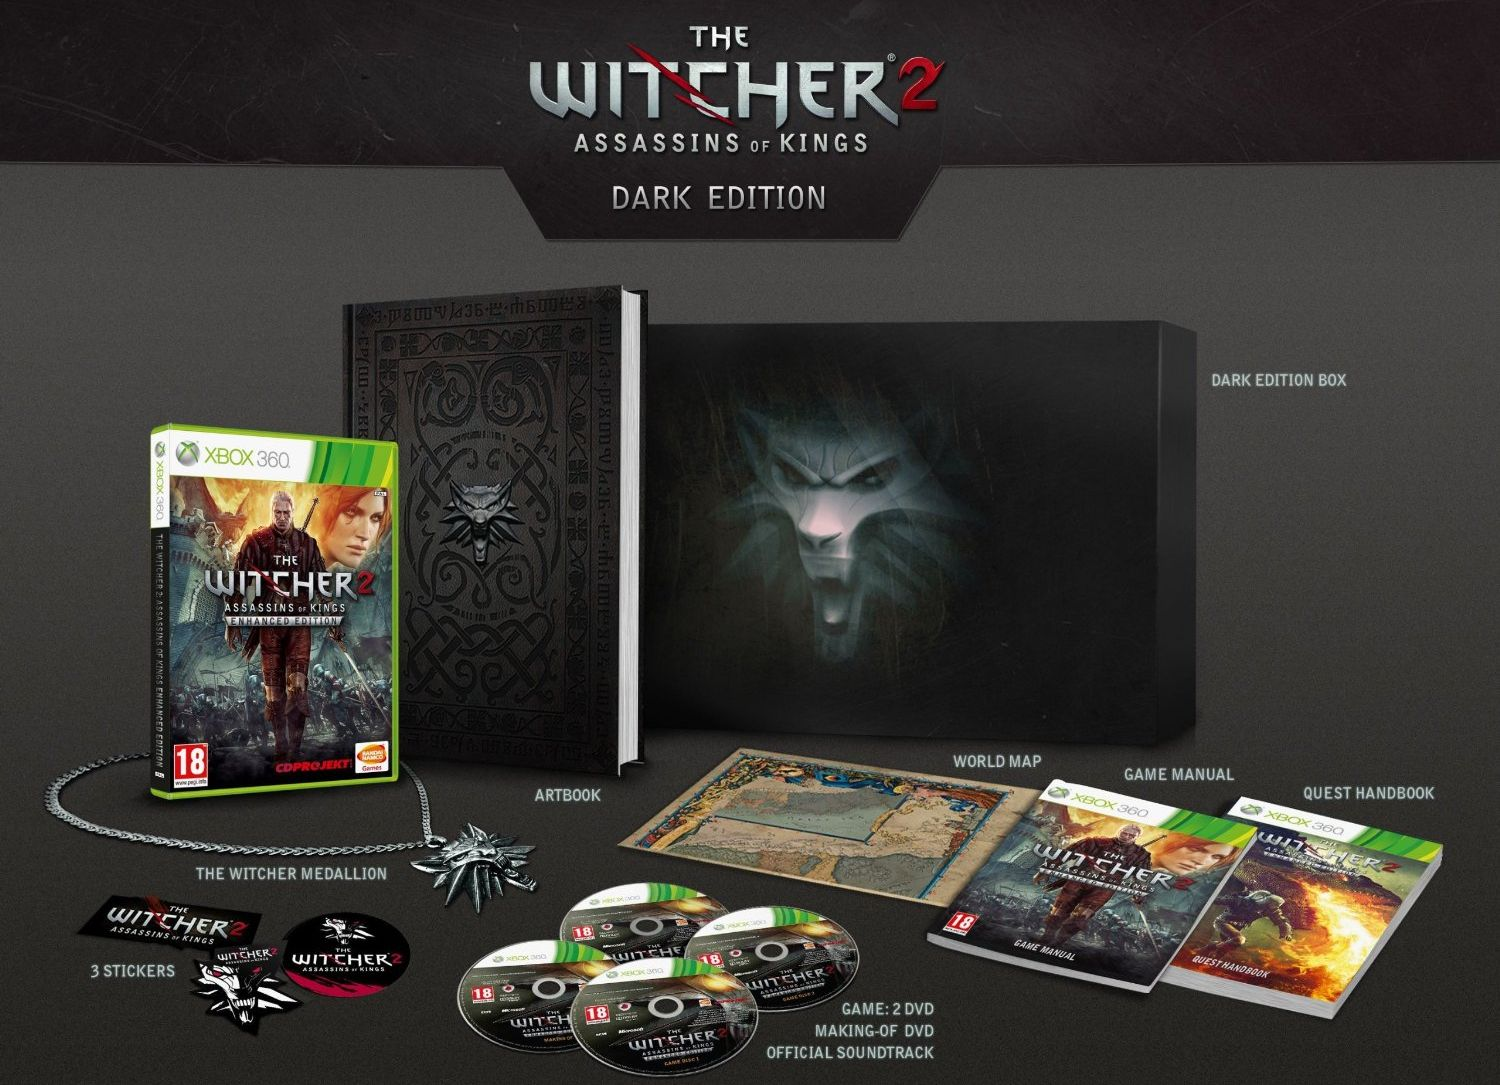 The witcher 2 ee hype thread. Aaa on gs. Hype has been met system.